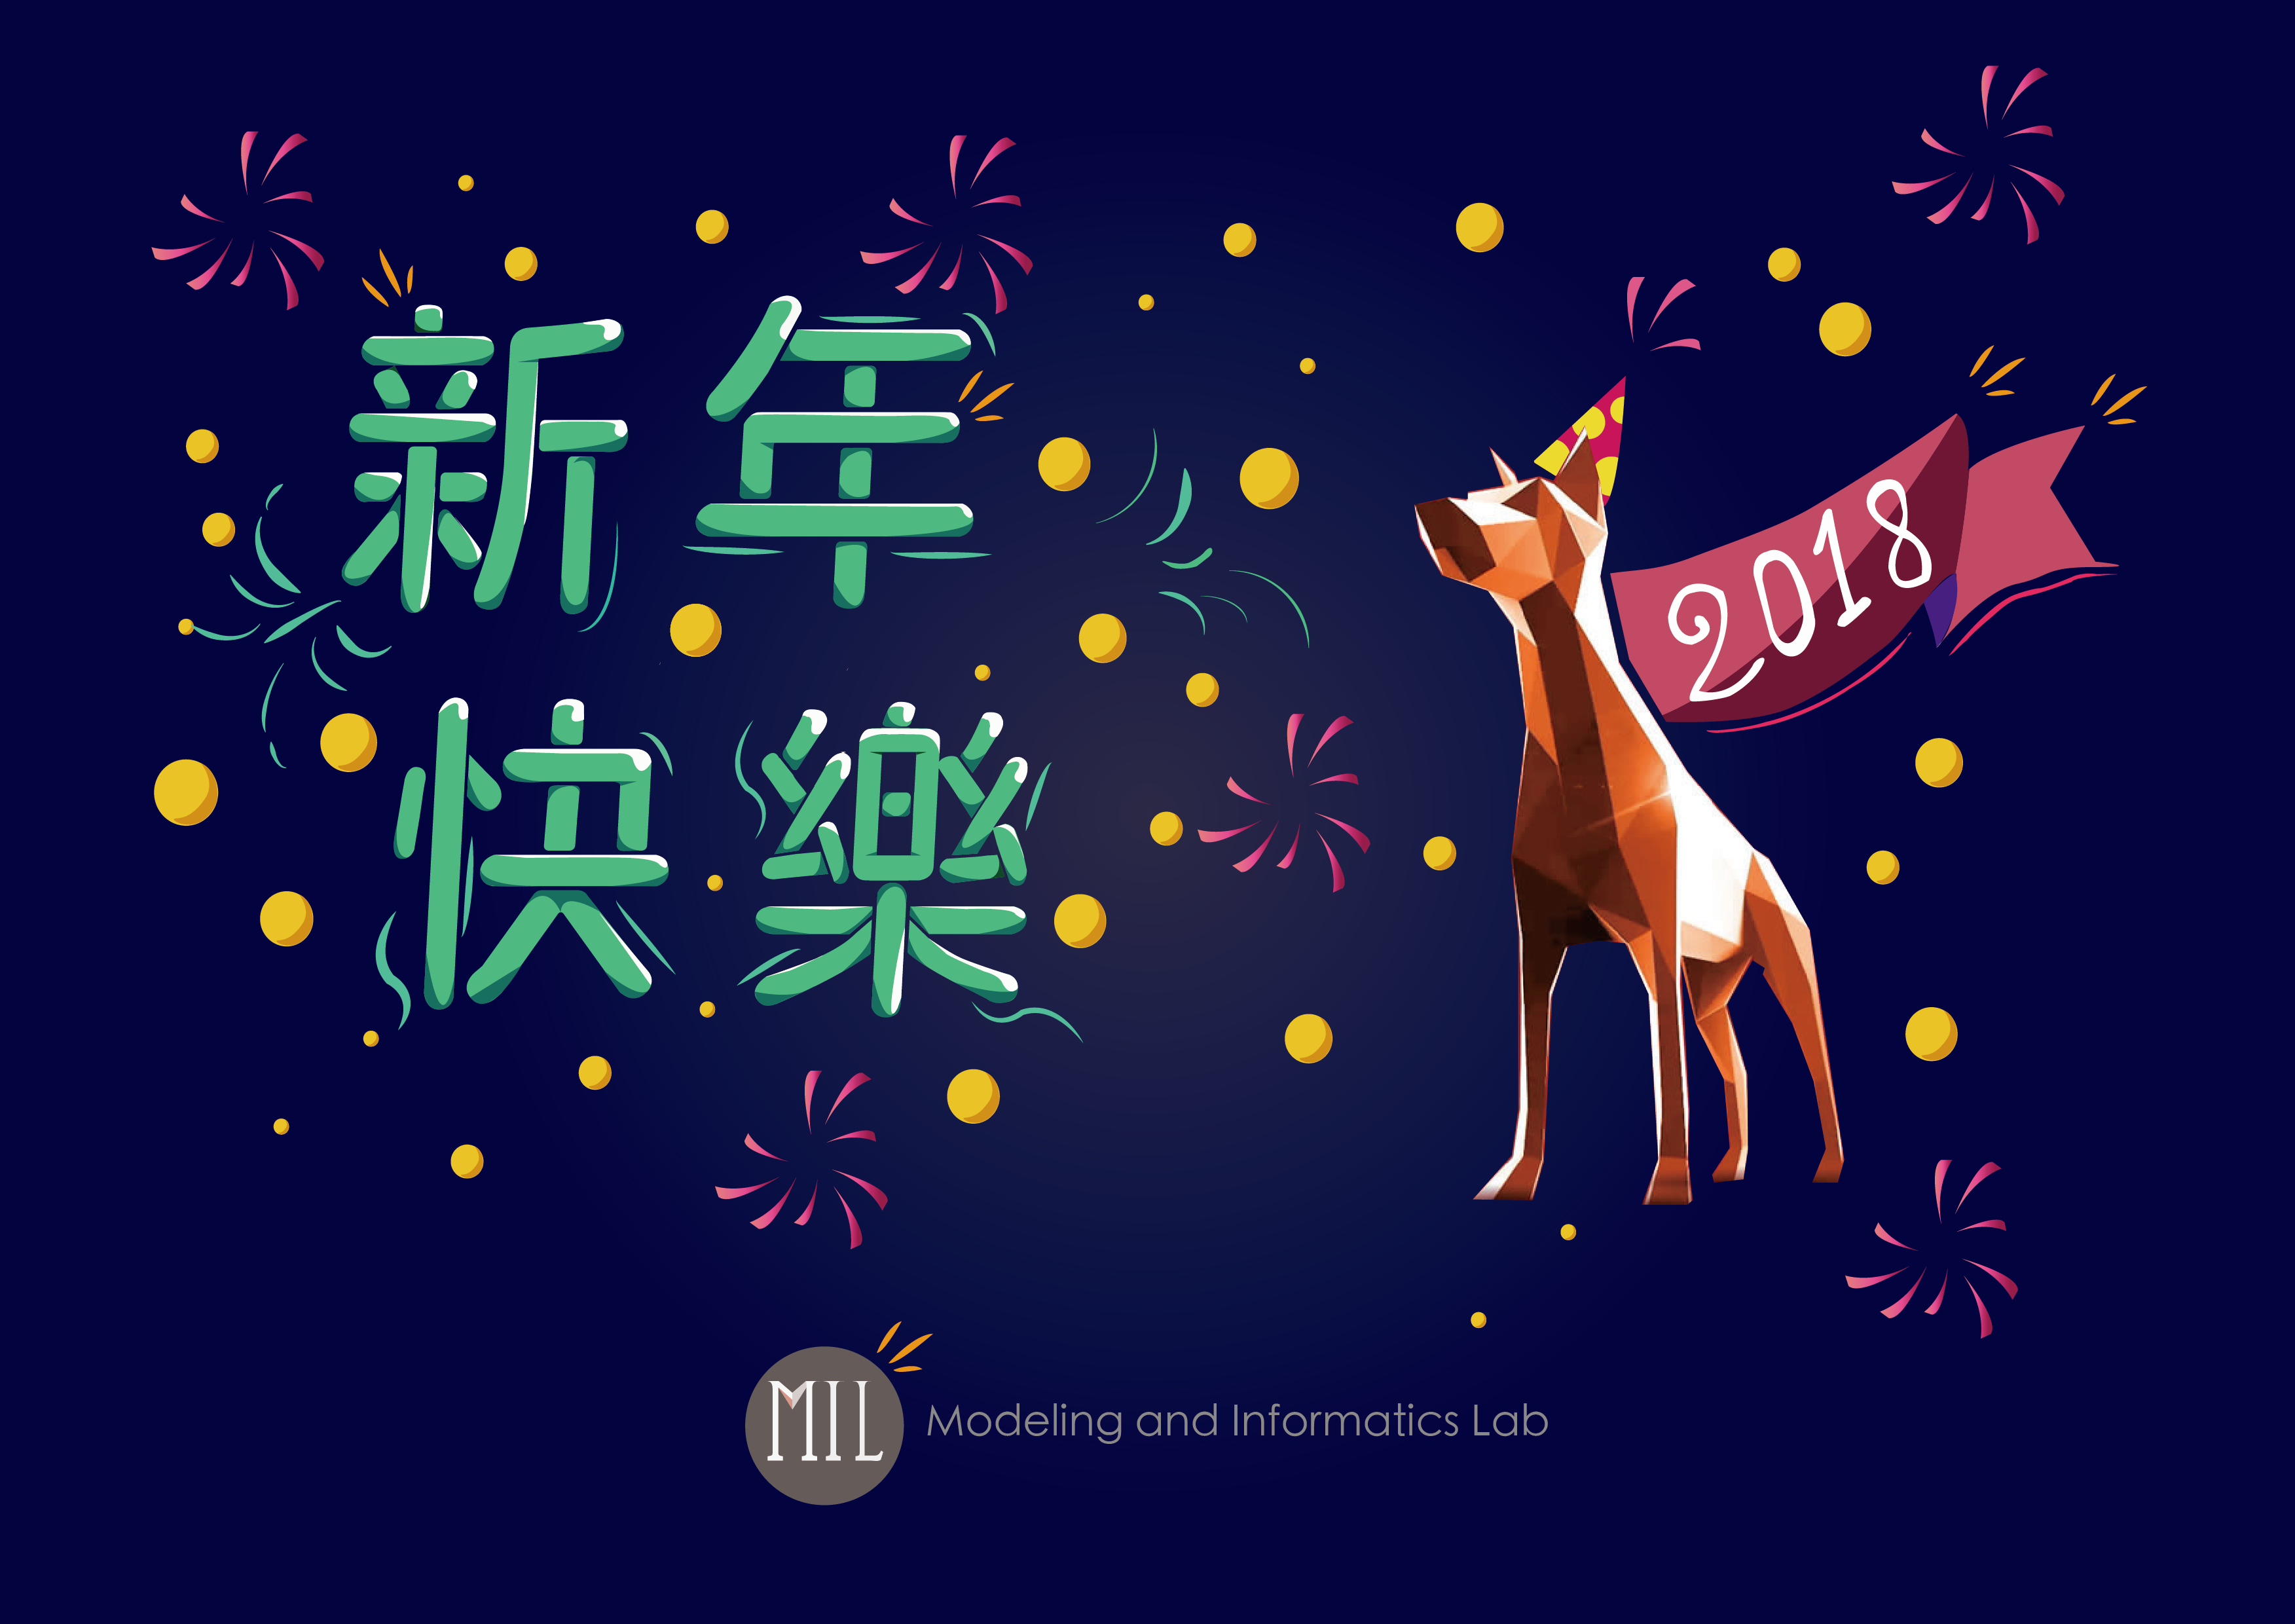 2018 New year card design.  Created with Adobe Illustrator.